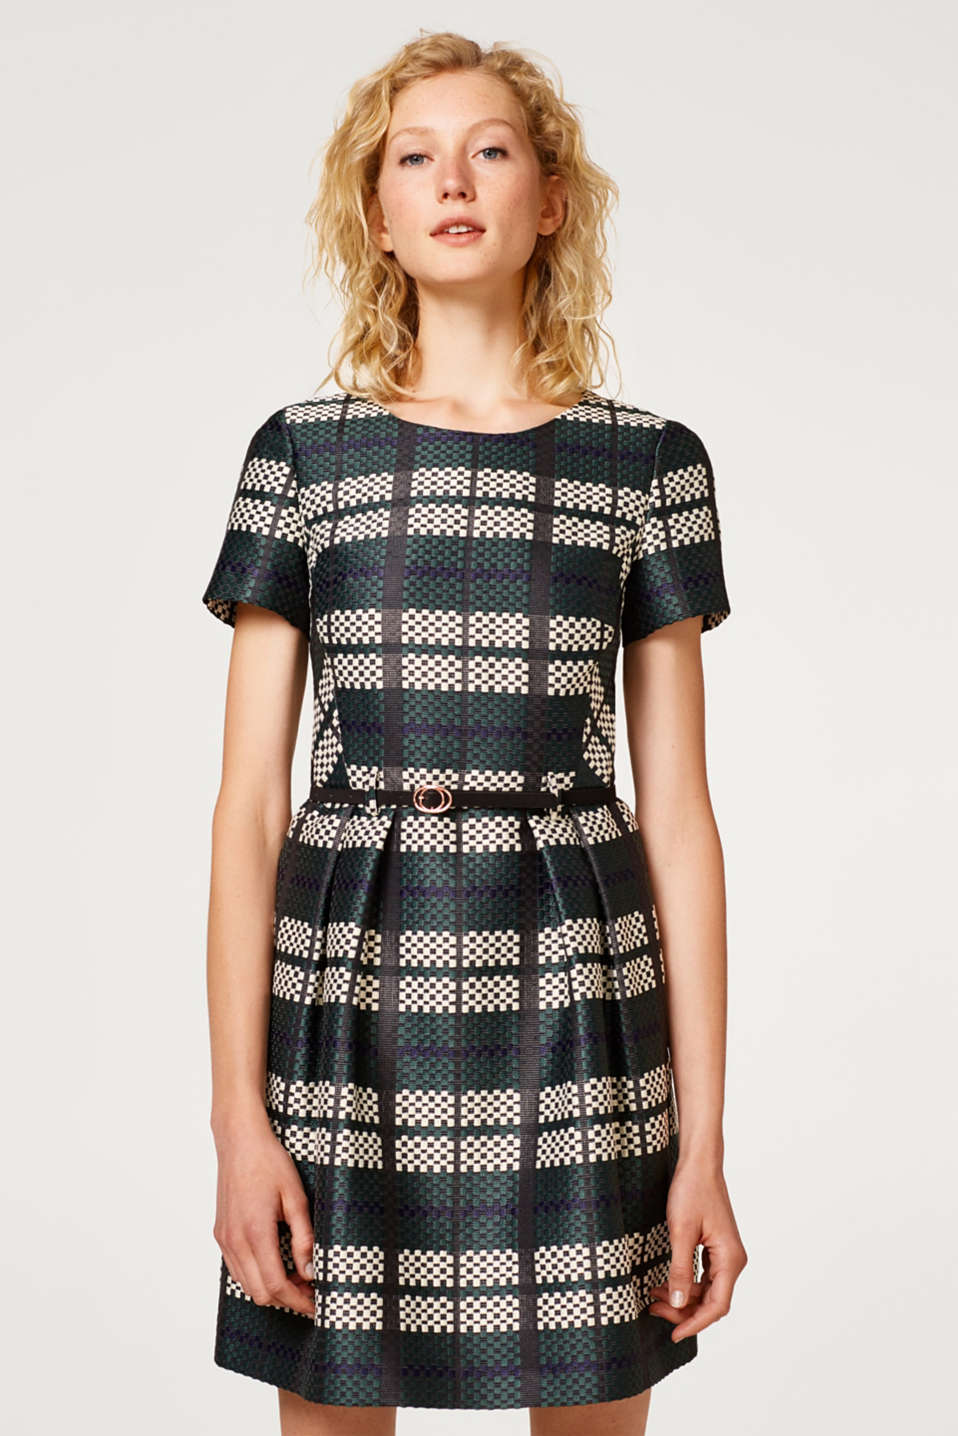 Esprit - Jacquard dress with a graphic pattern